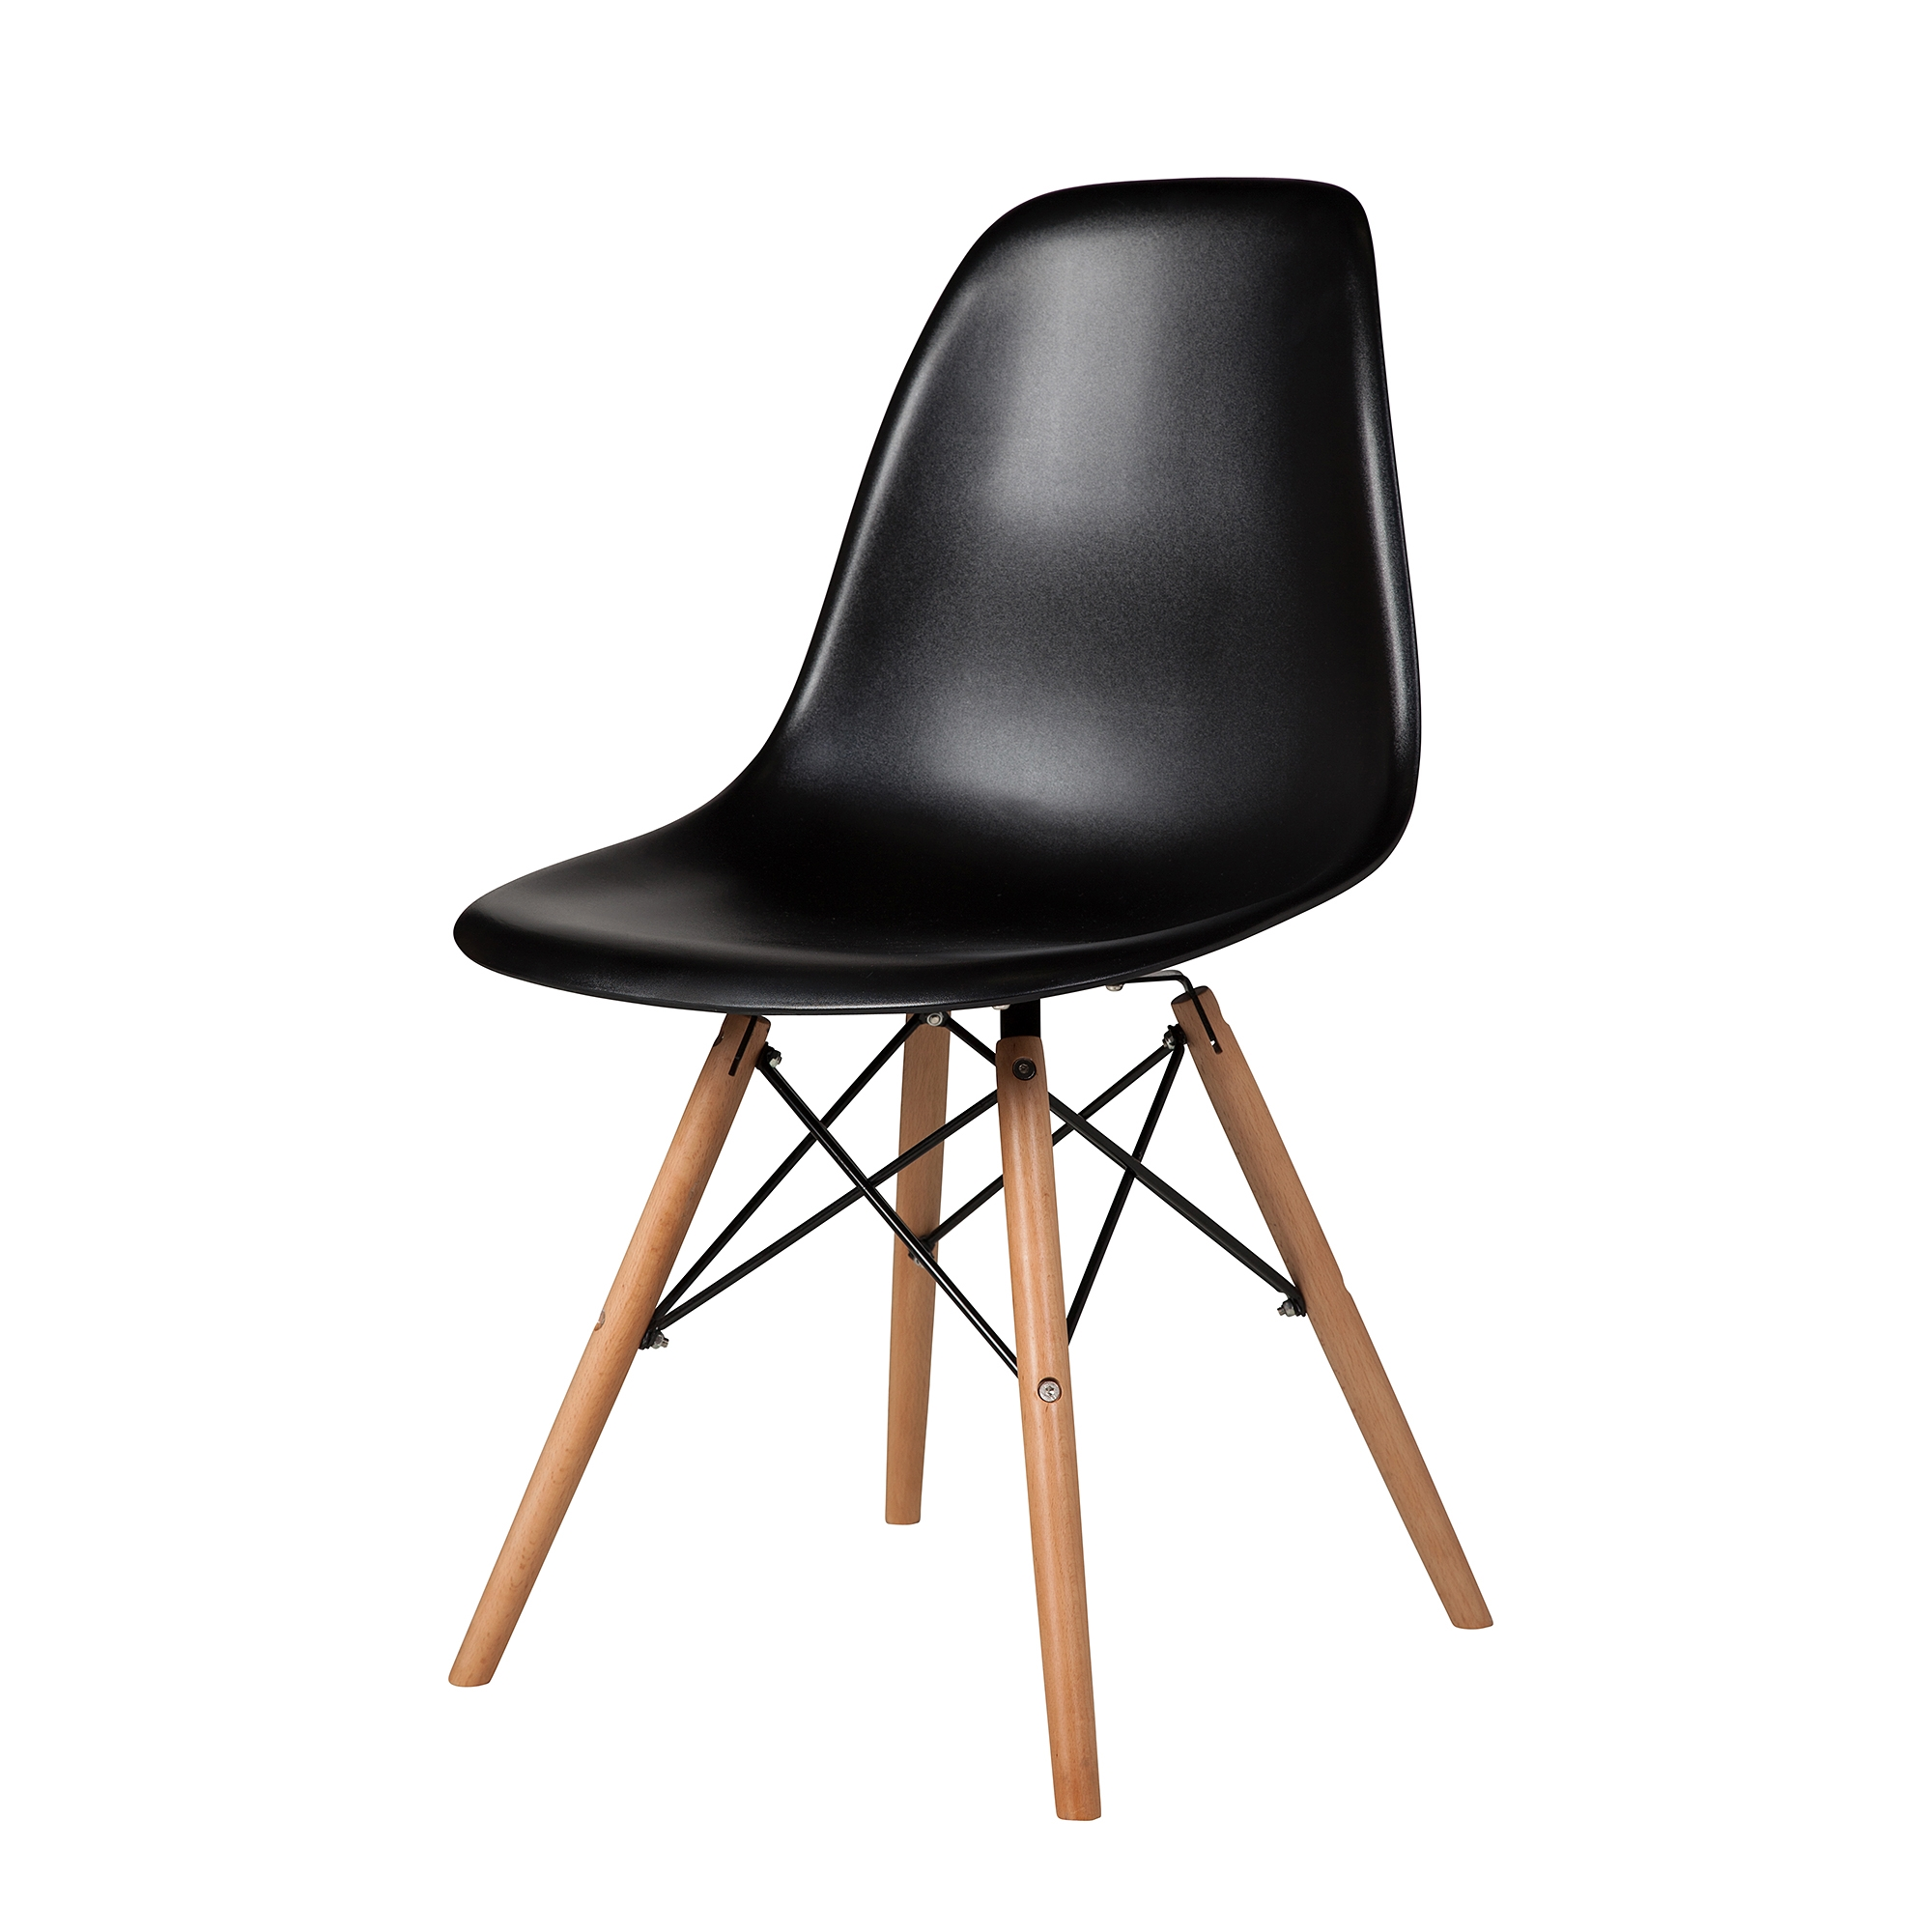 Charles Eames Dsw Side Chair Mid Century Modern Black The Khazana